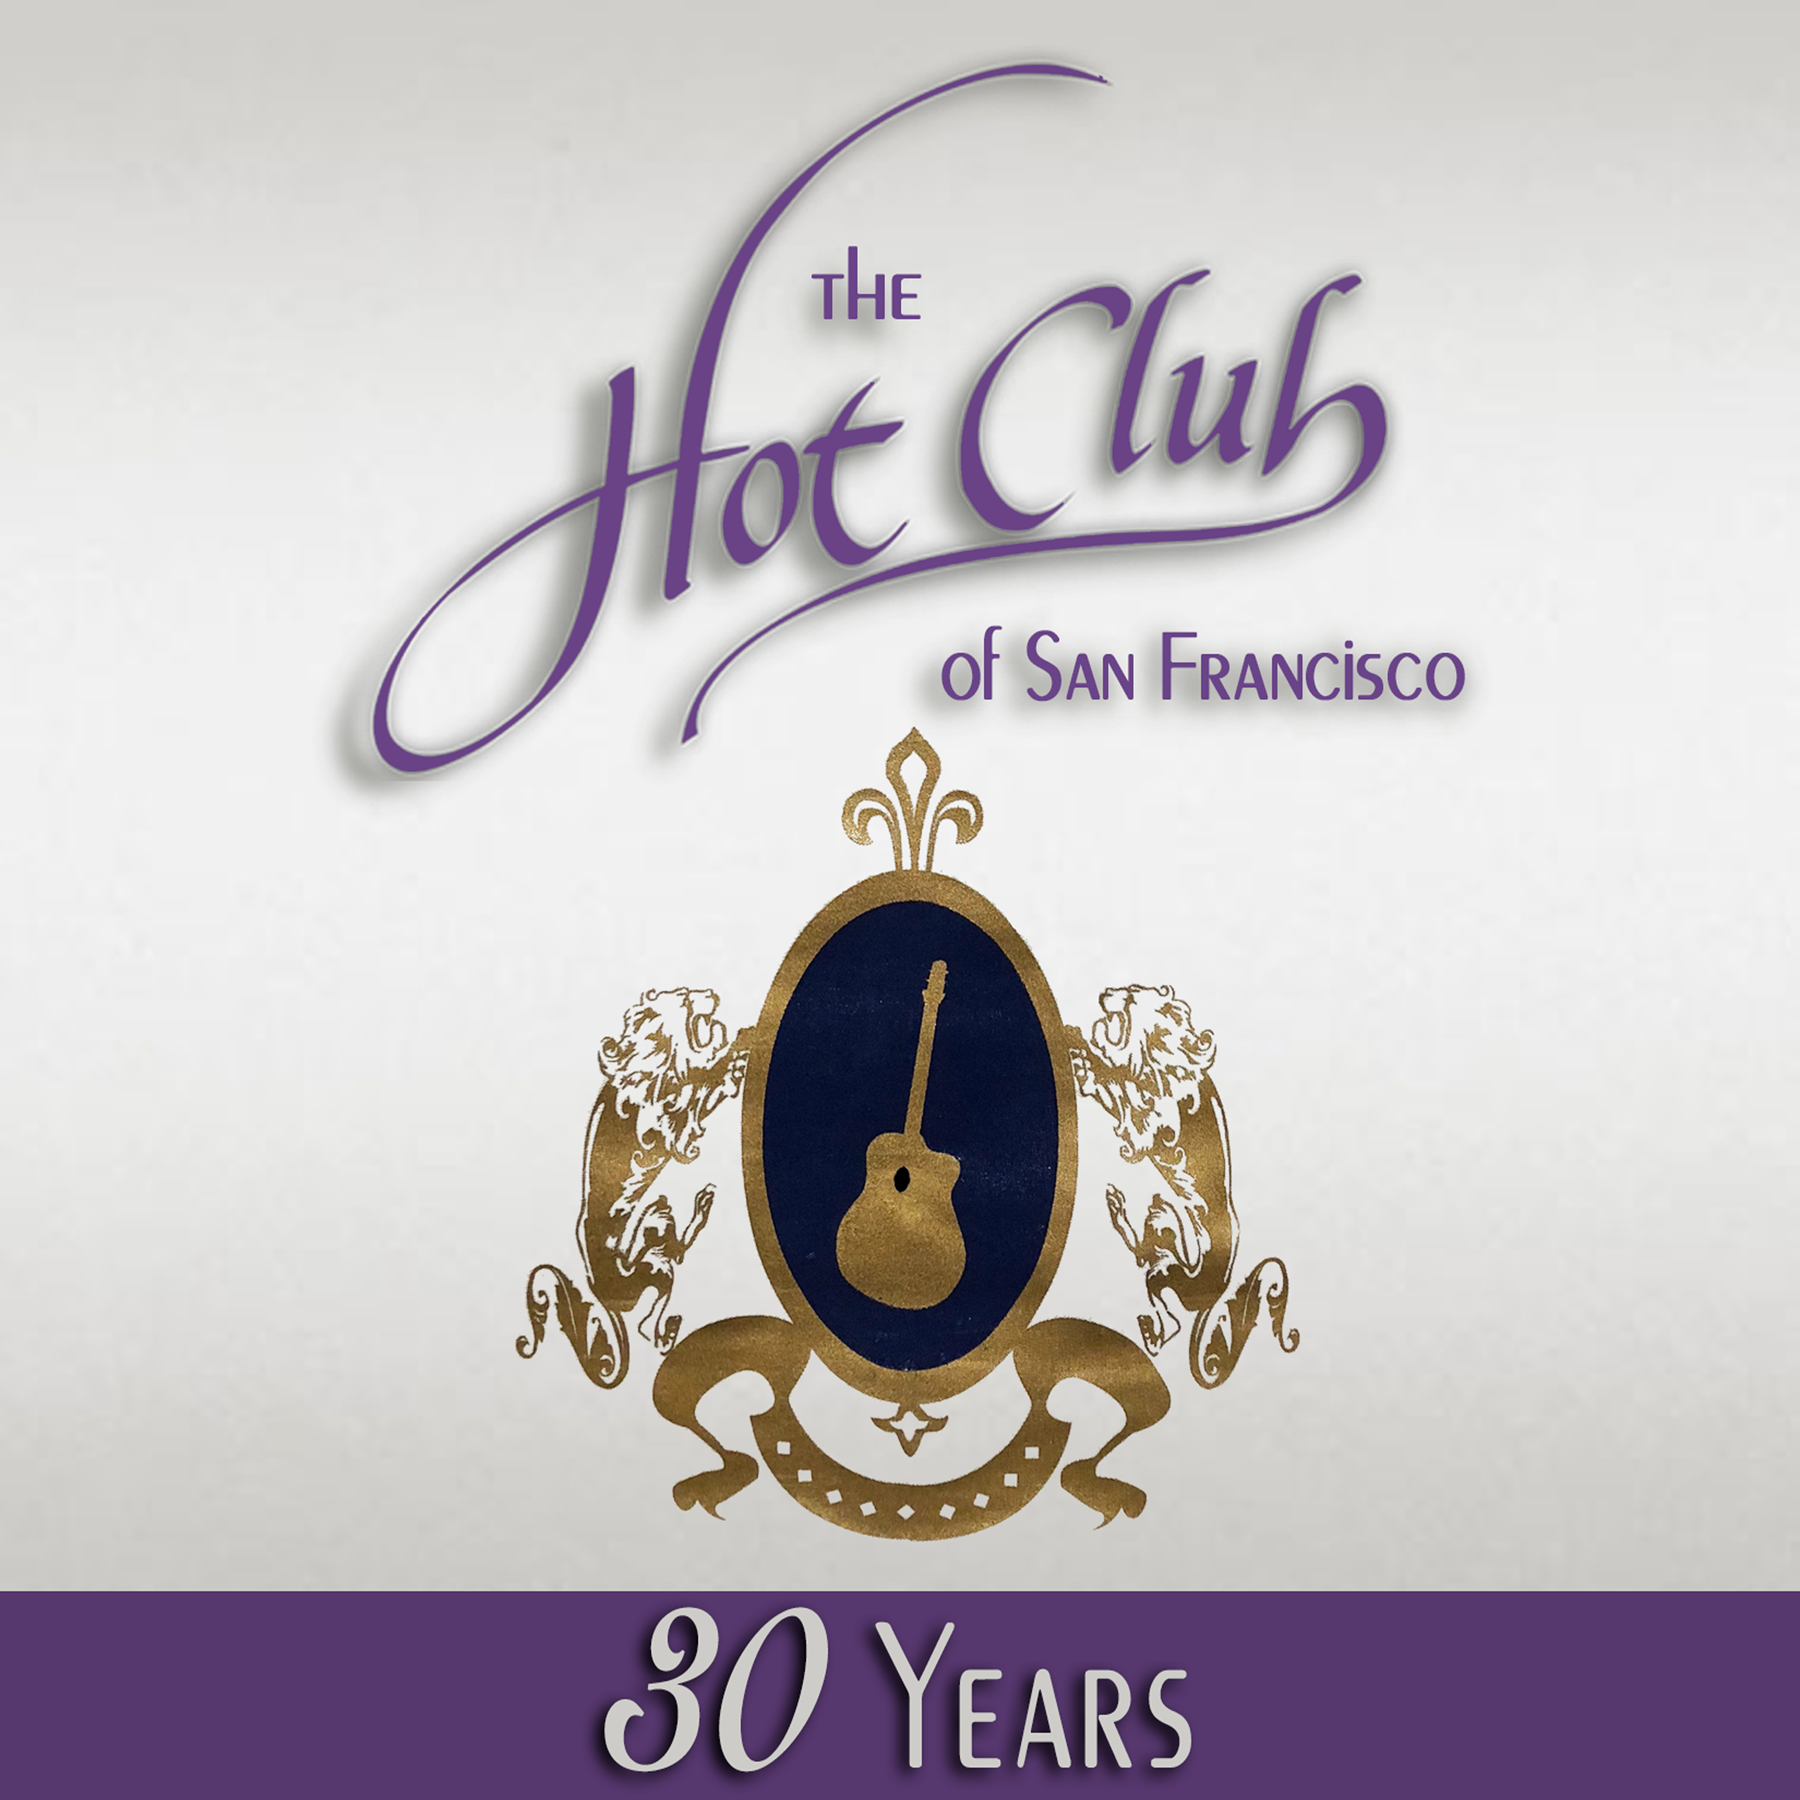 Copyright © 2018 Hot Club of San Francisco